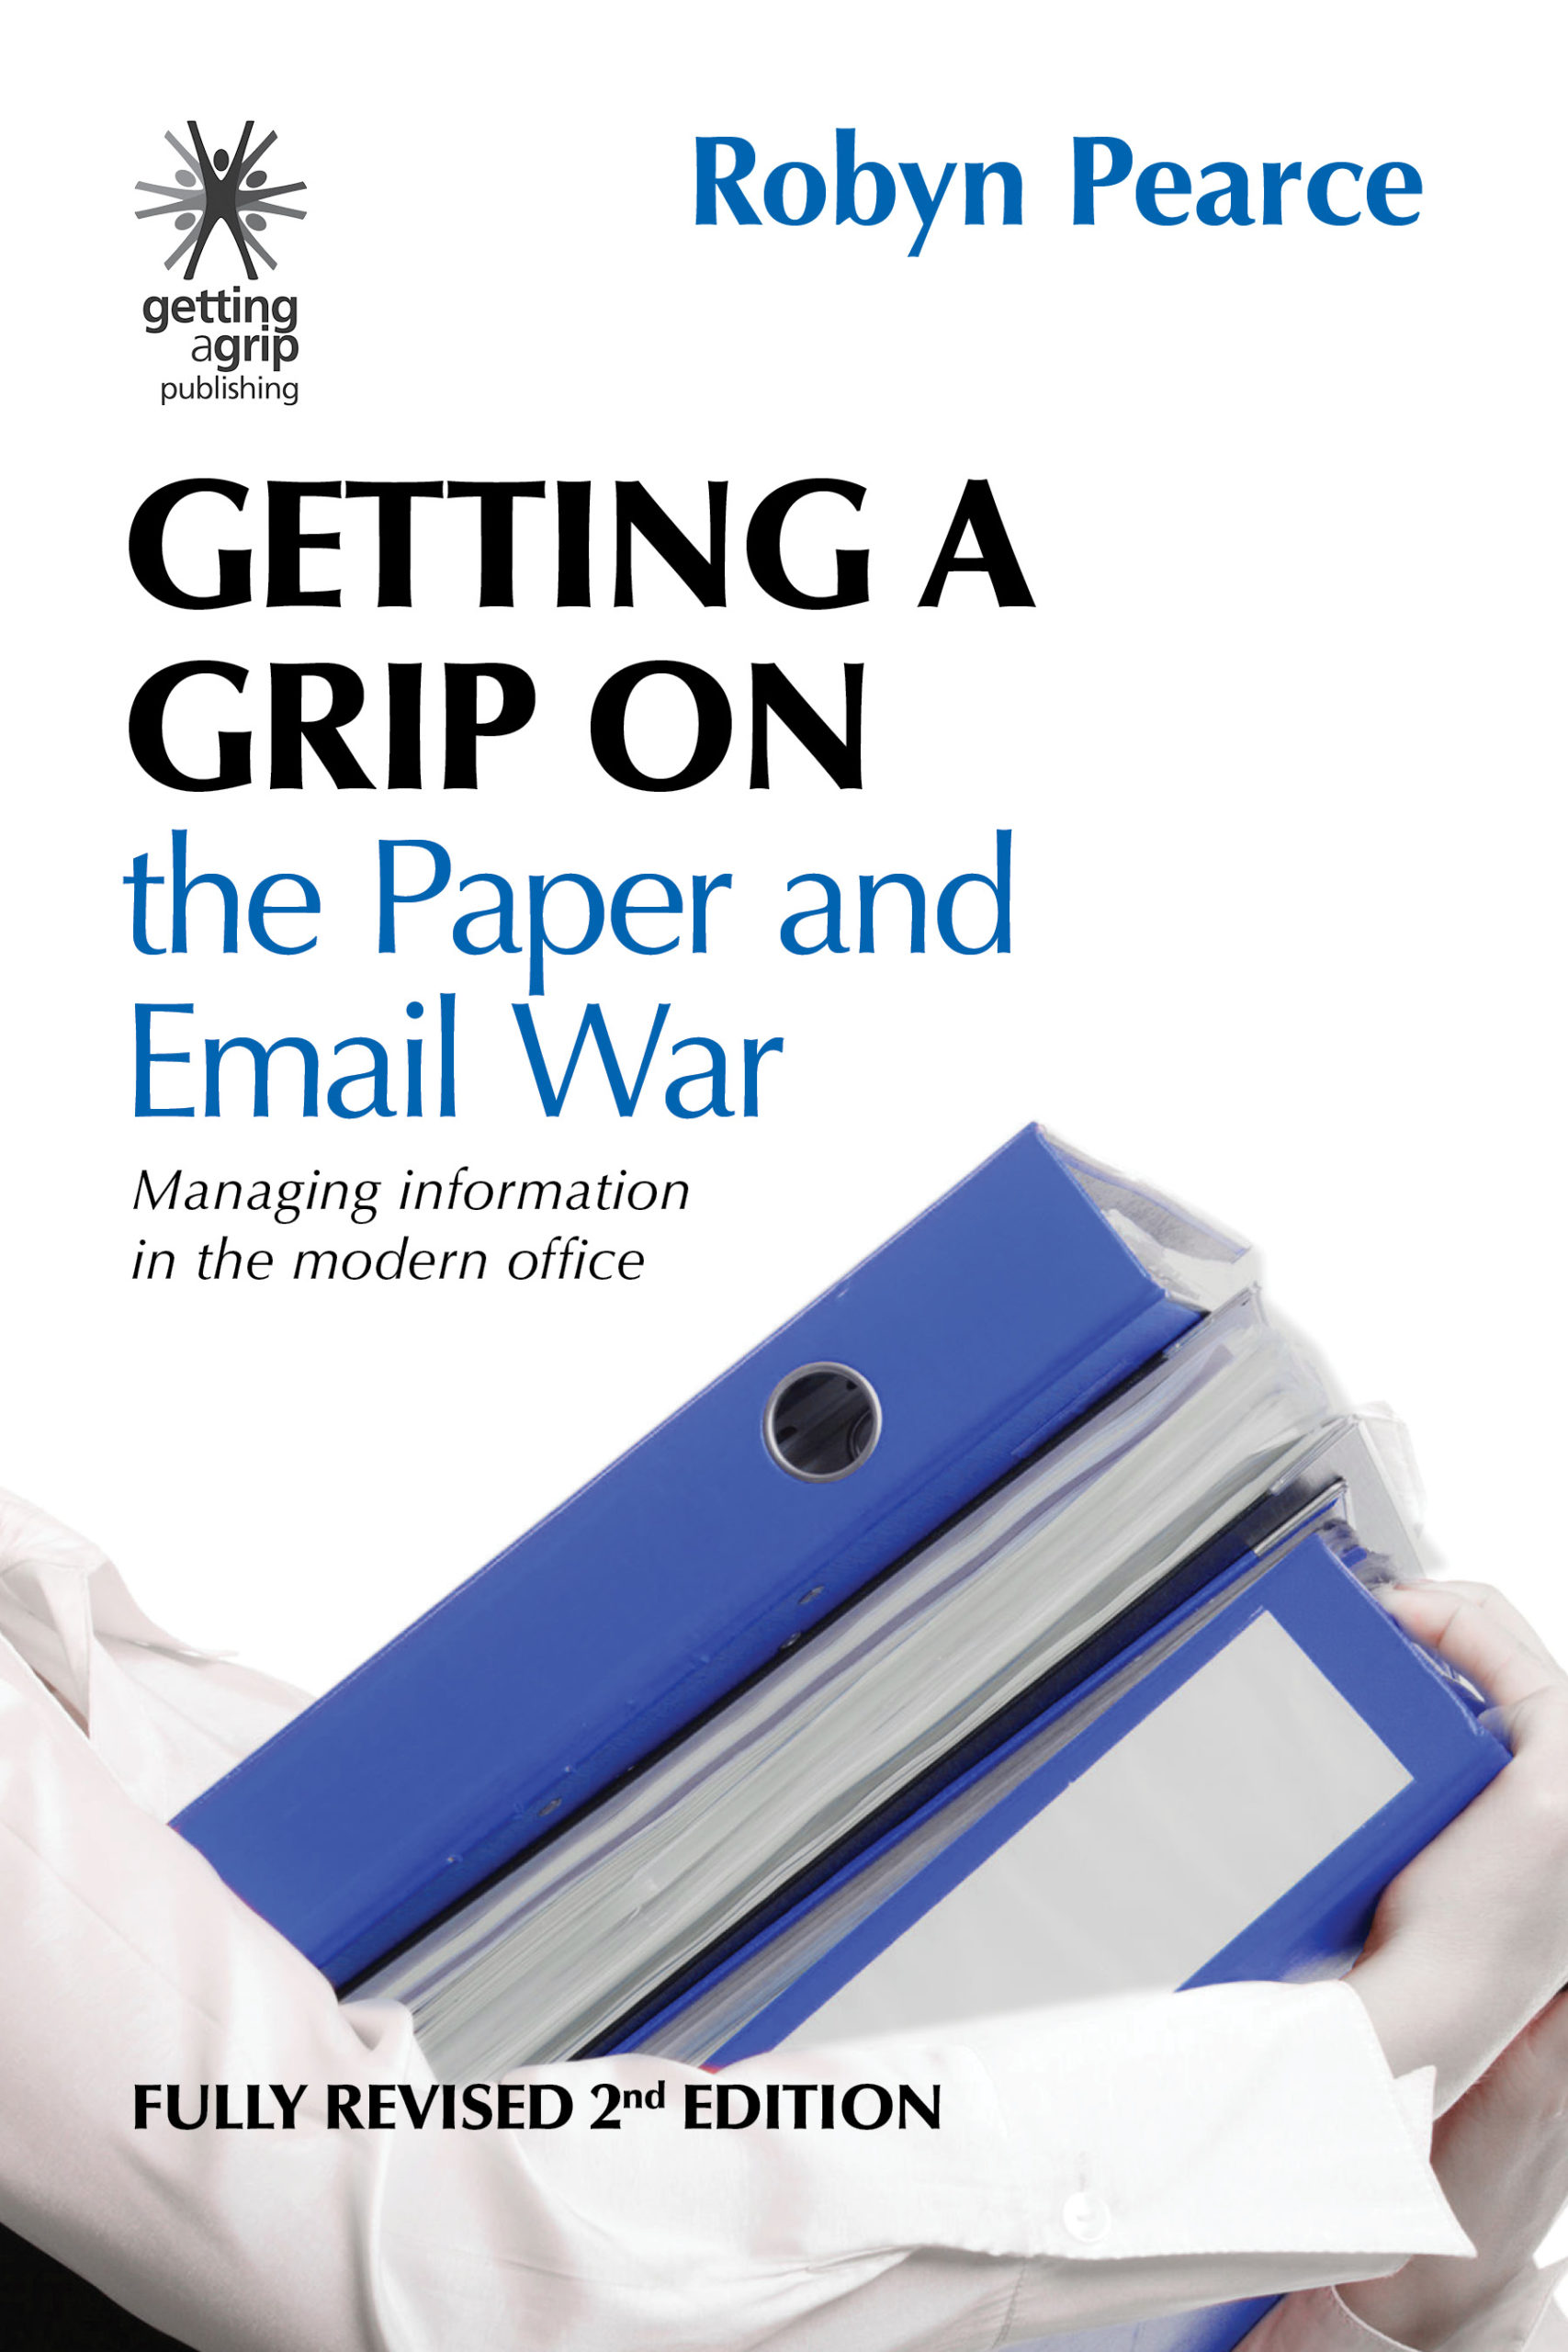 Getting A Grip on the Paper & Email War – Managing information in the modern office